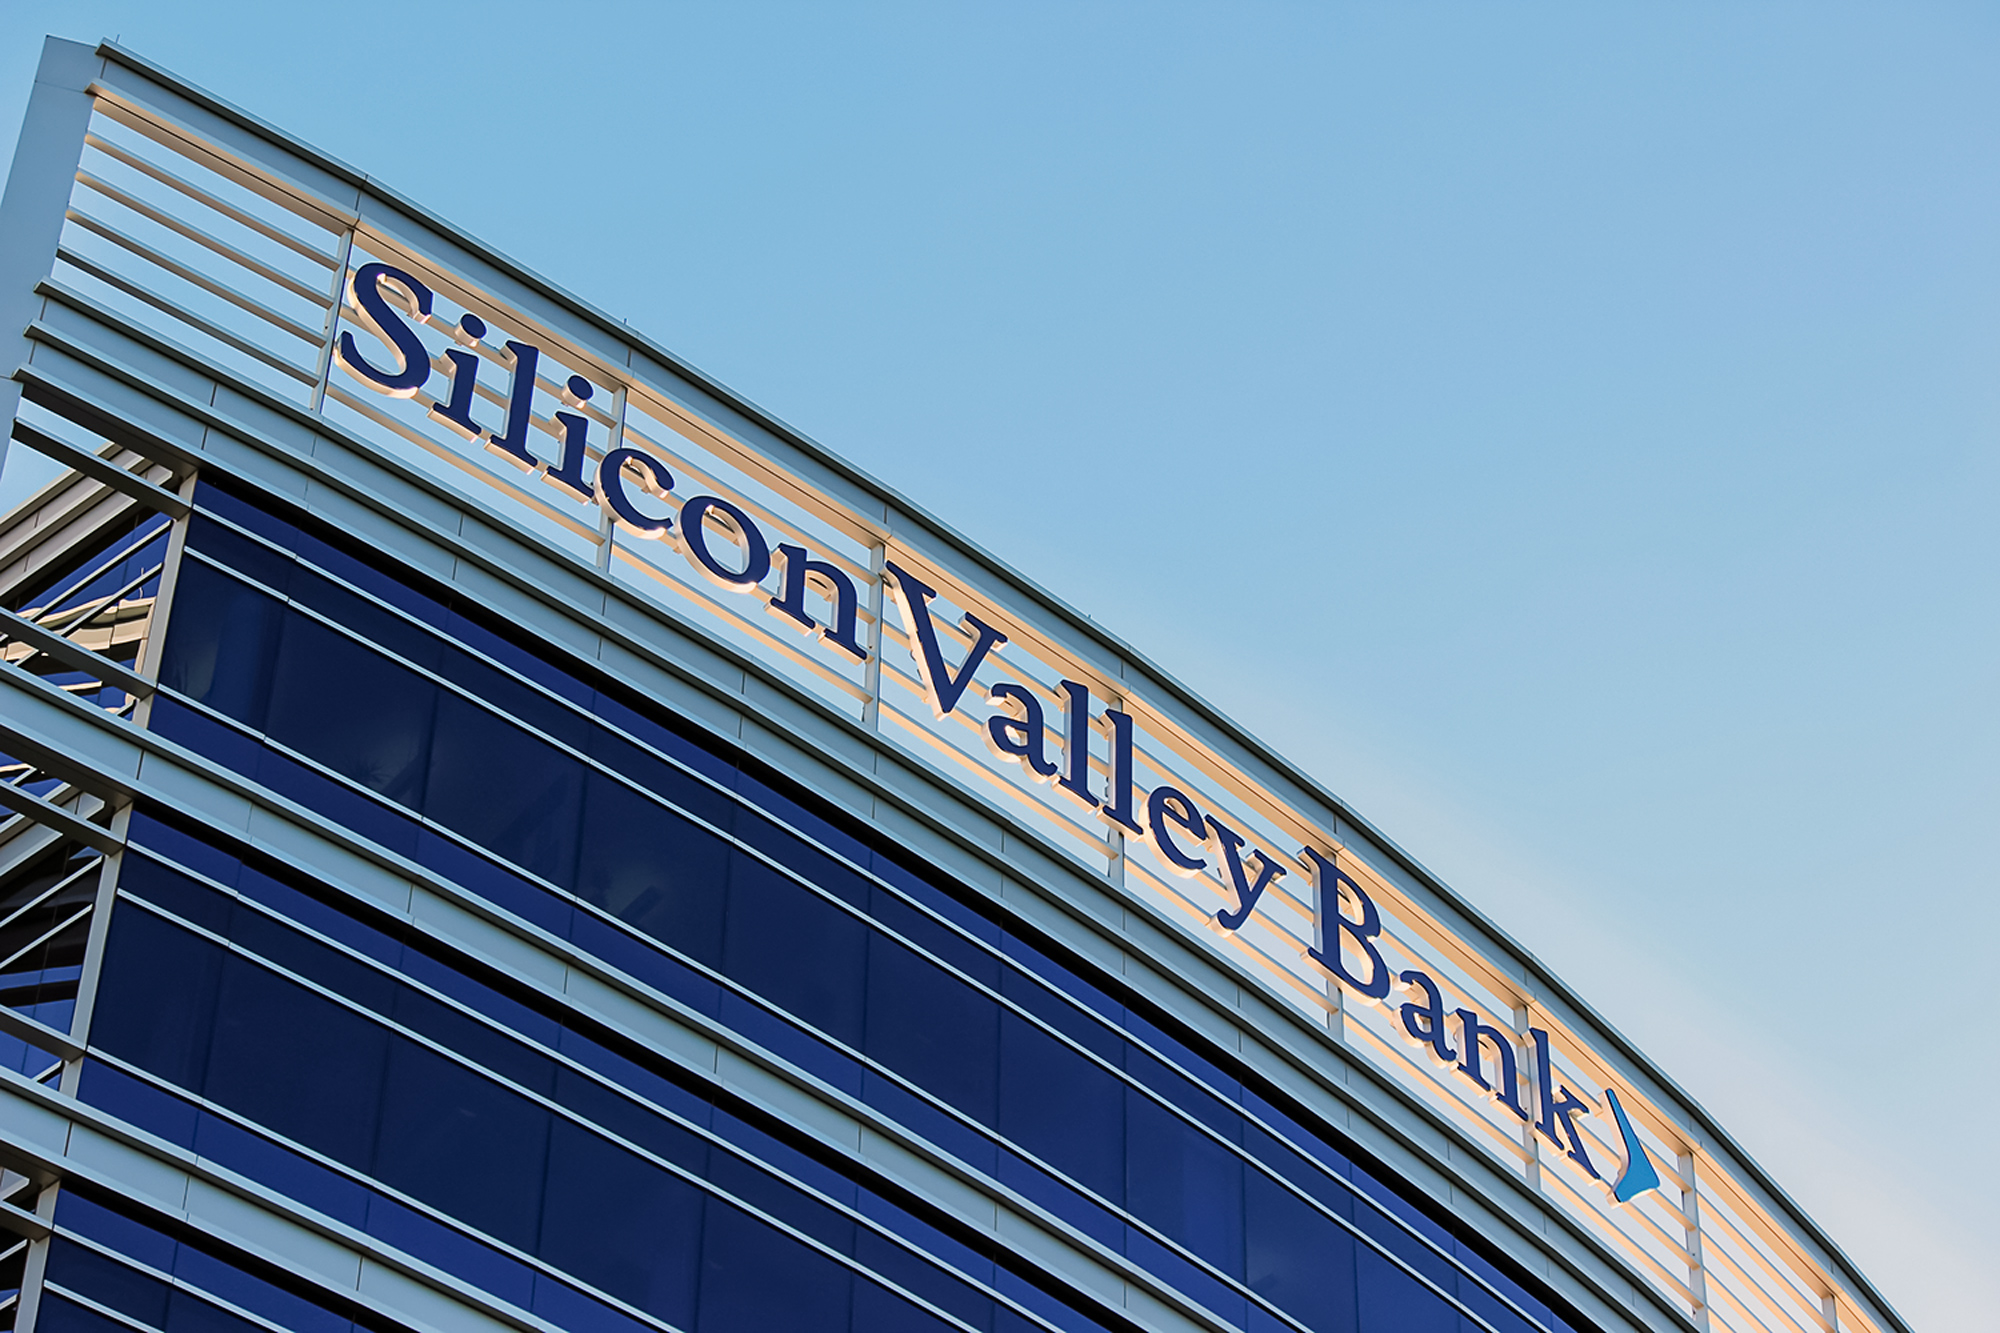 The Silicon Valley Bank illuminated building top letterset is installed on two elevations of the mid rise building.